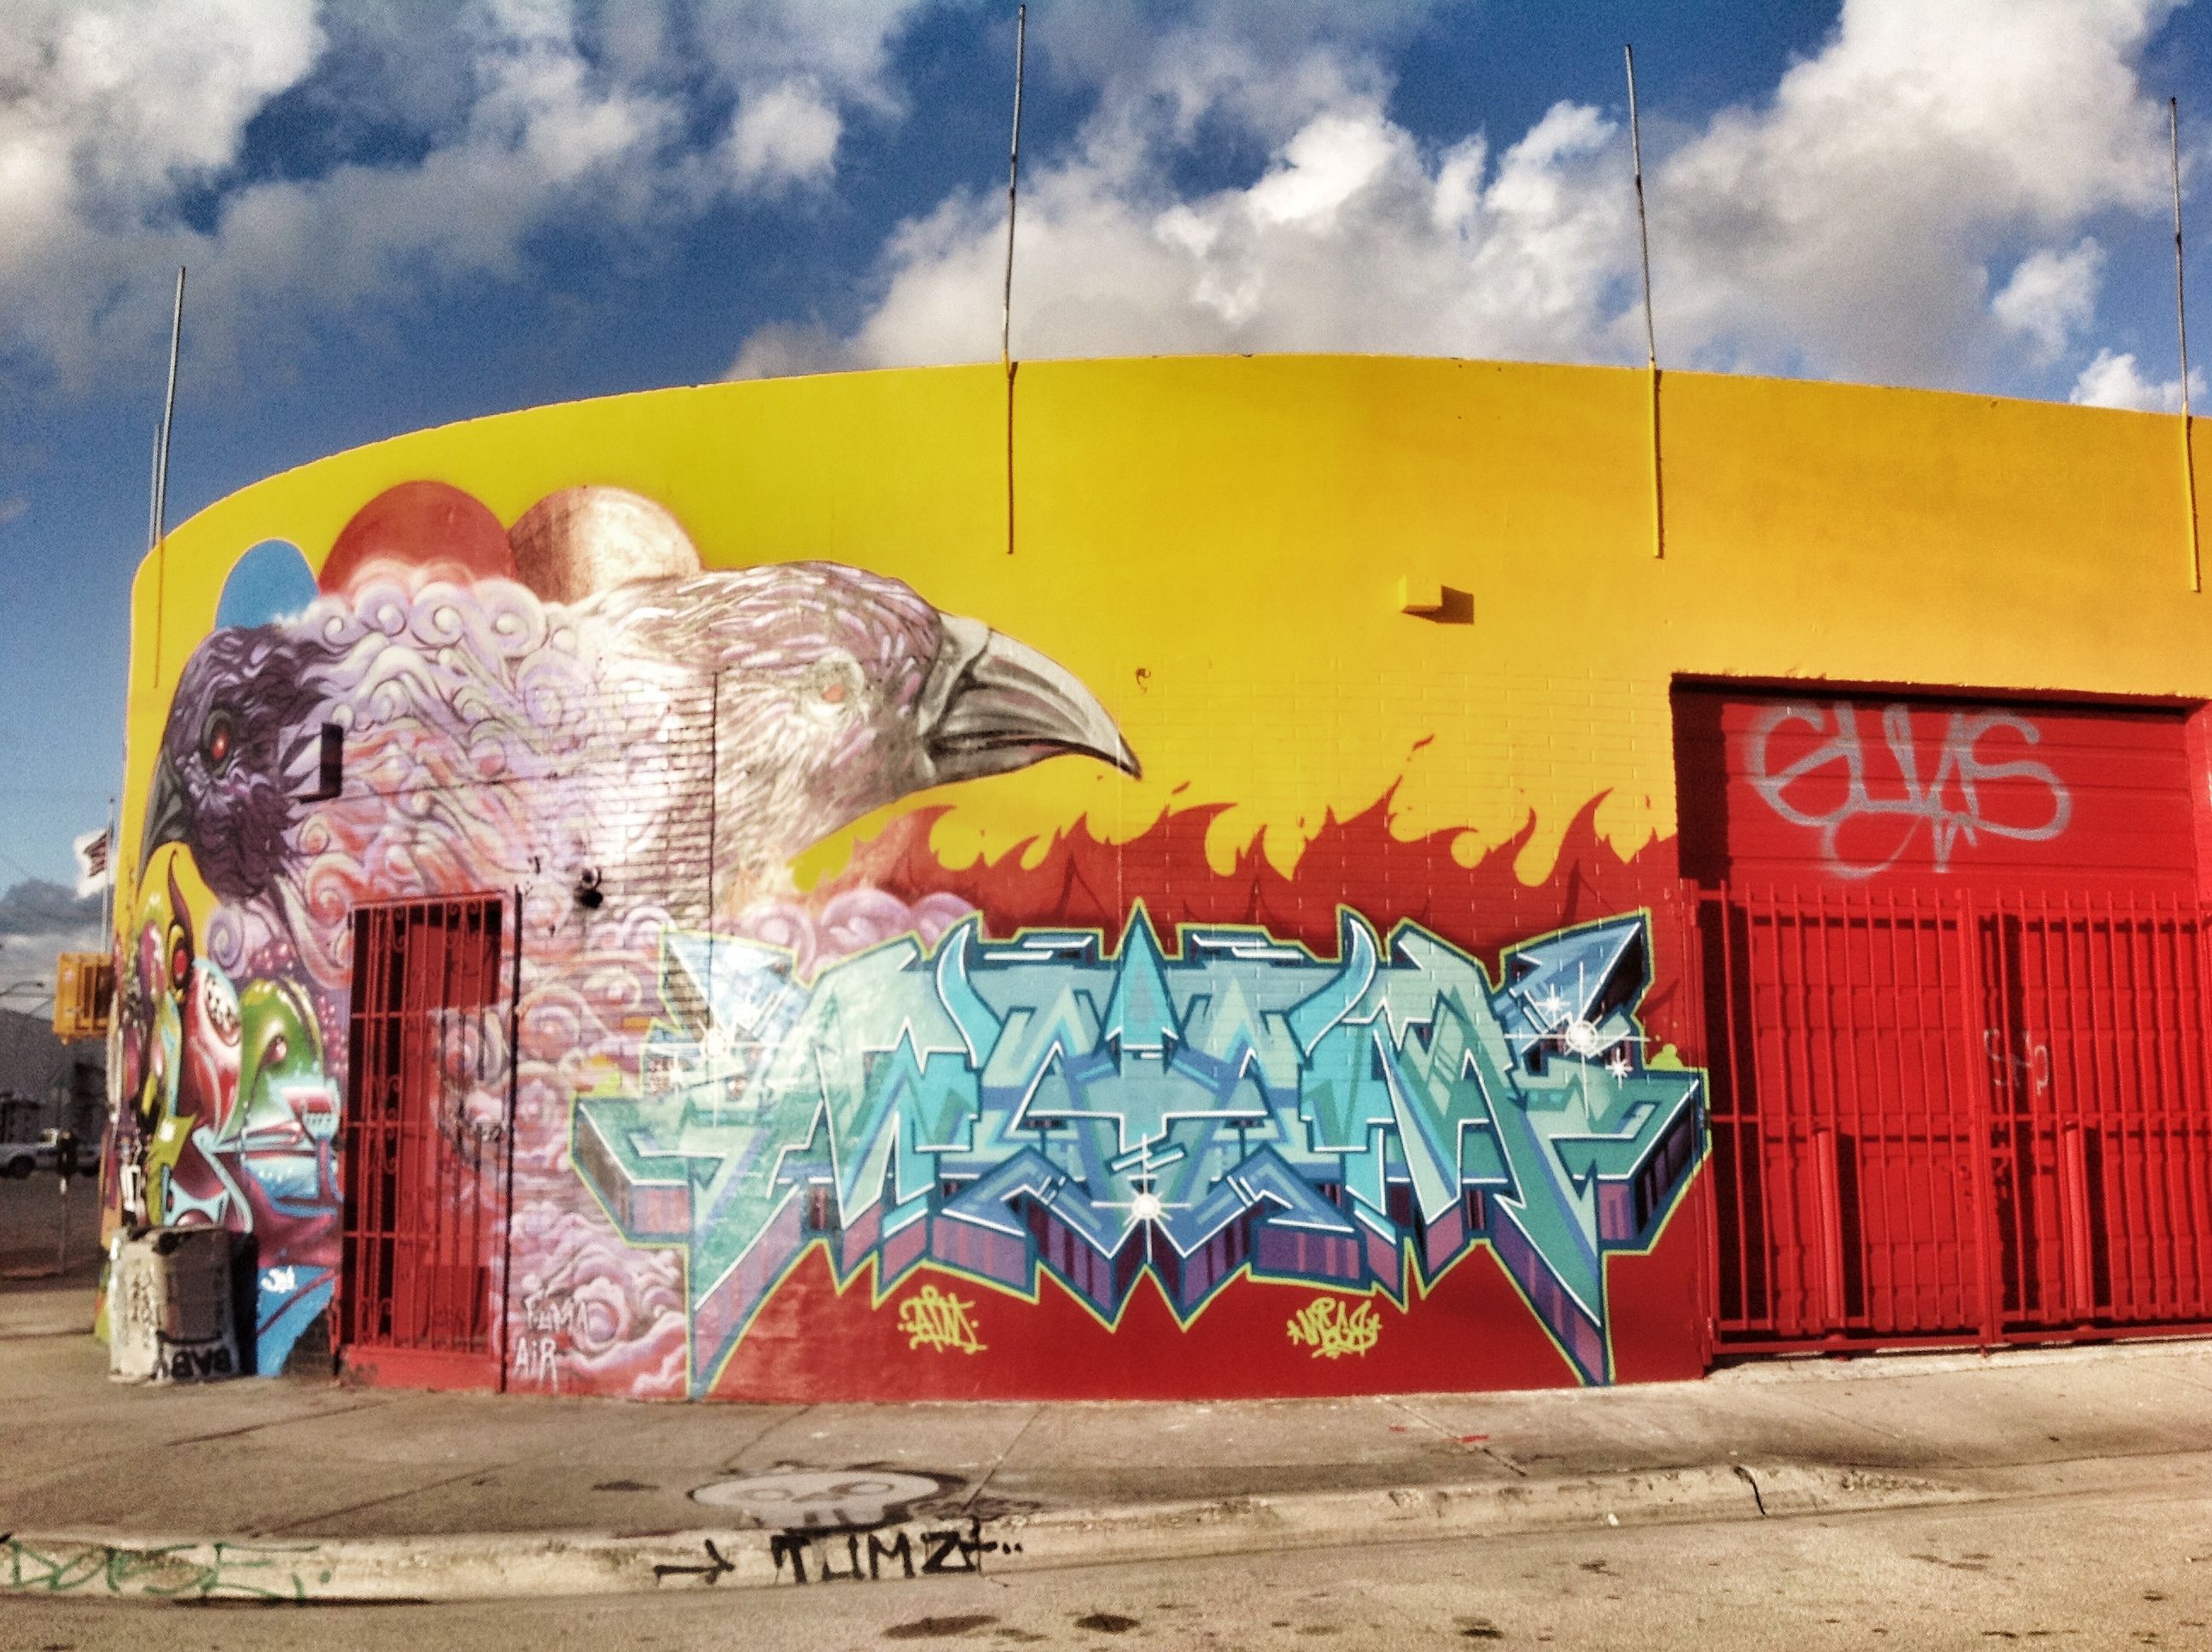 Wall art in Wynwood | Miami/Florida | Pinterest | Miami